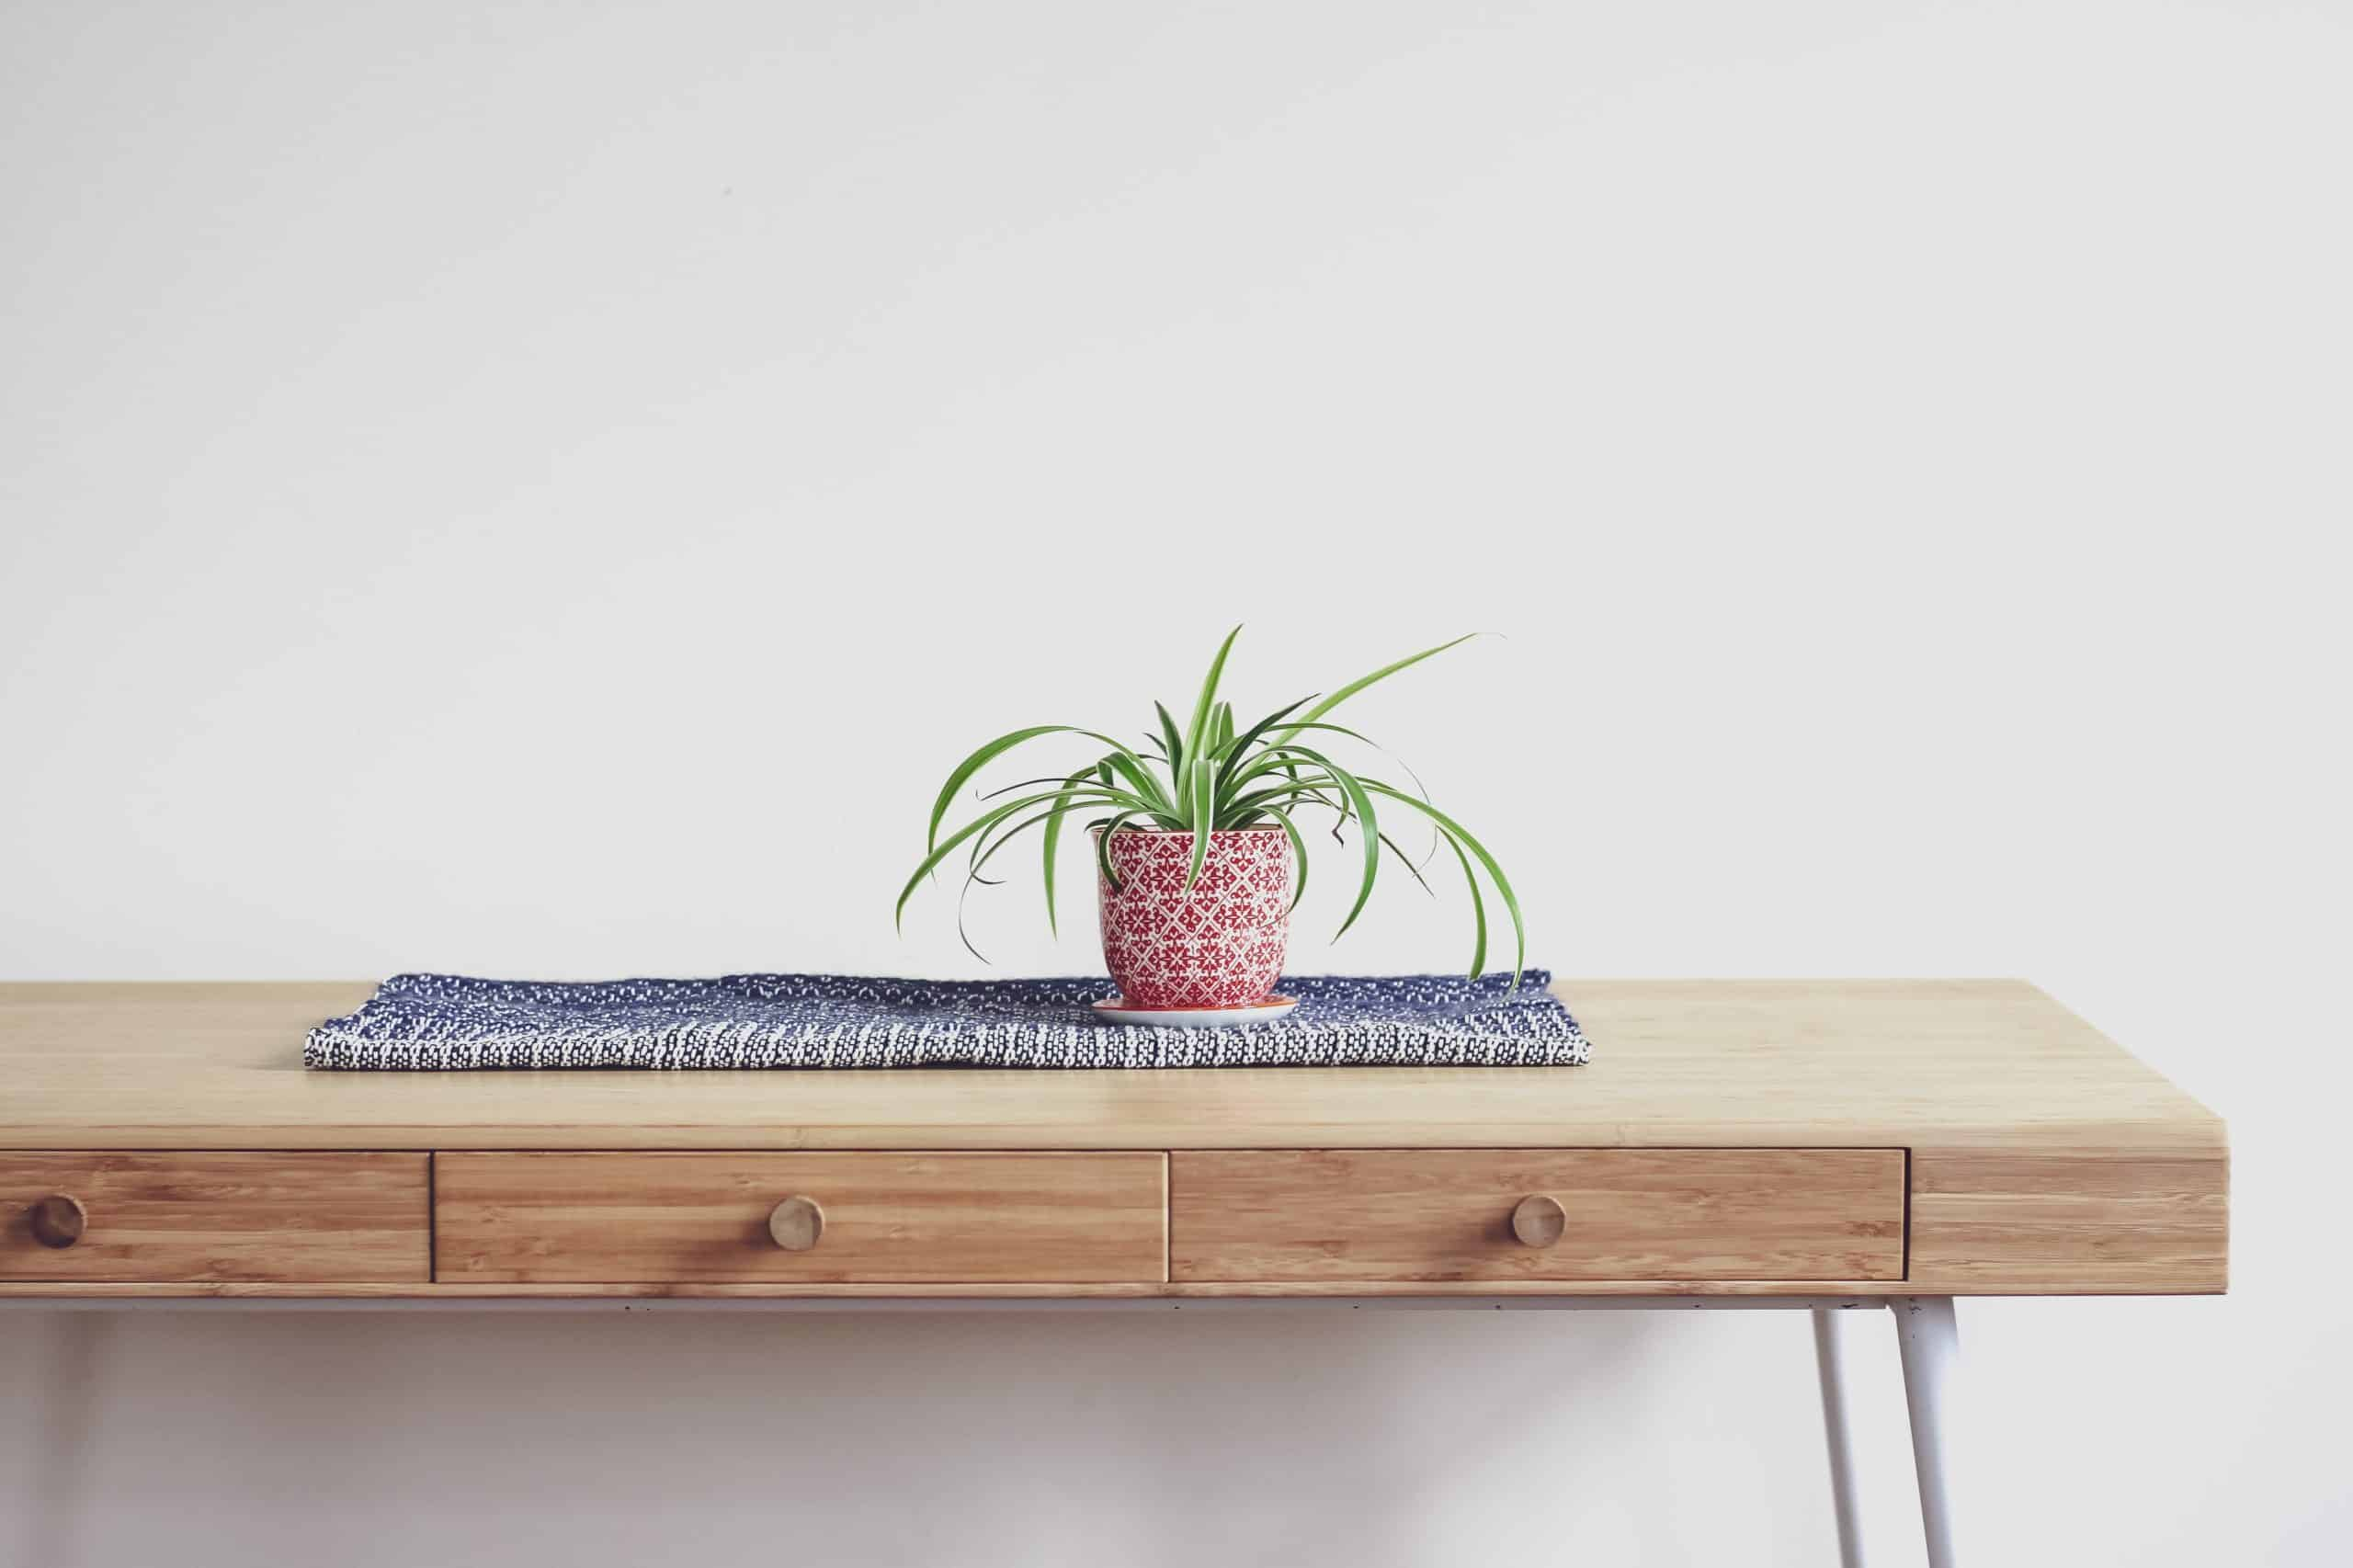 How To Take Care Of Spider Plant: A Guide For Beginners